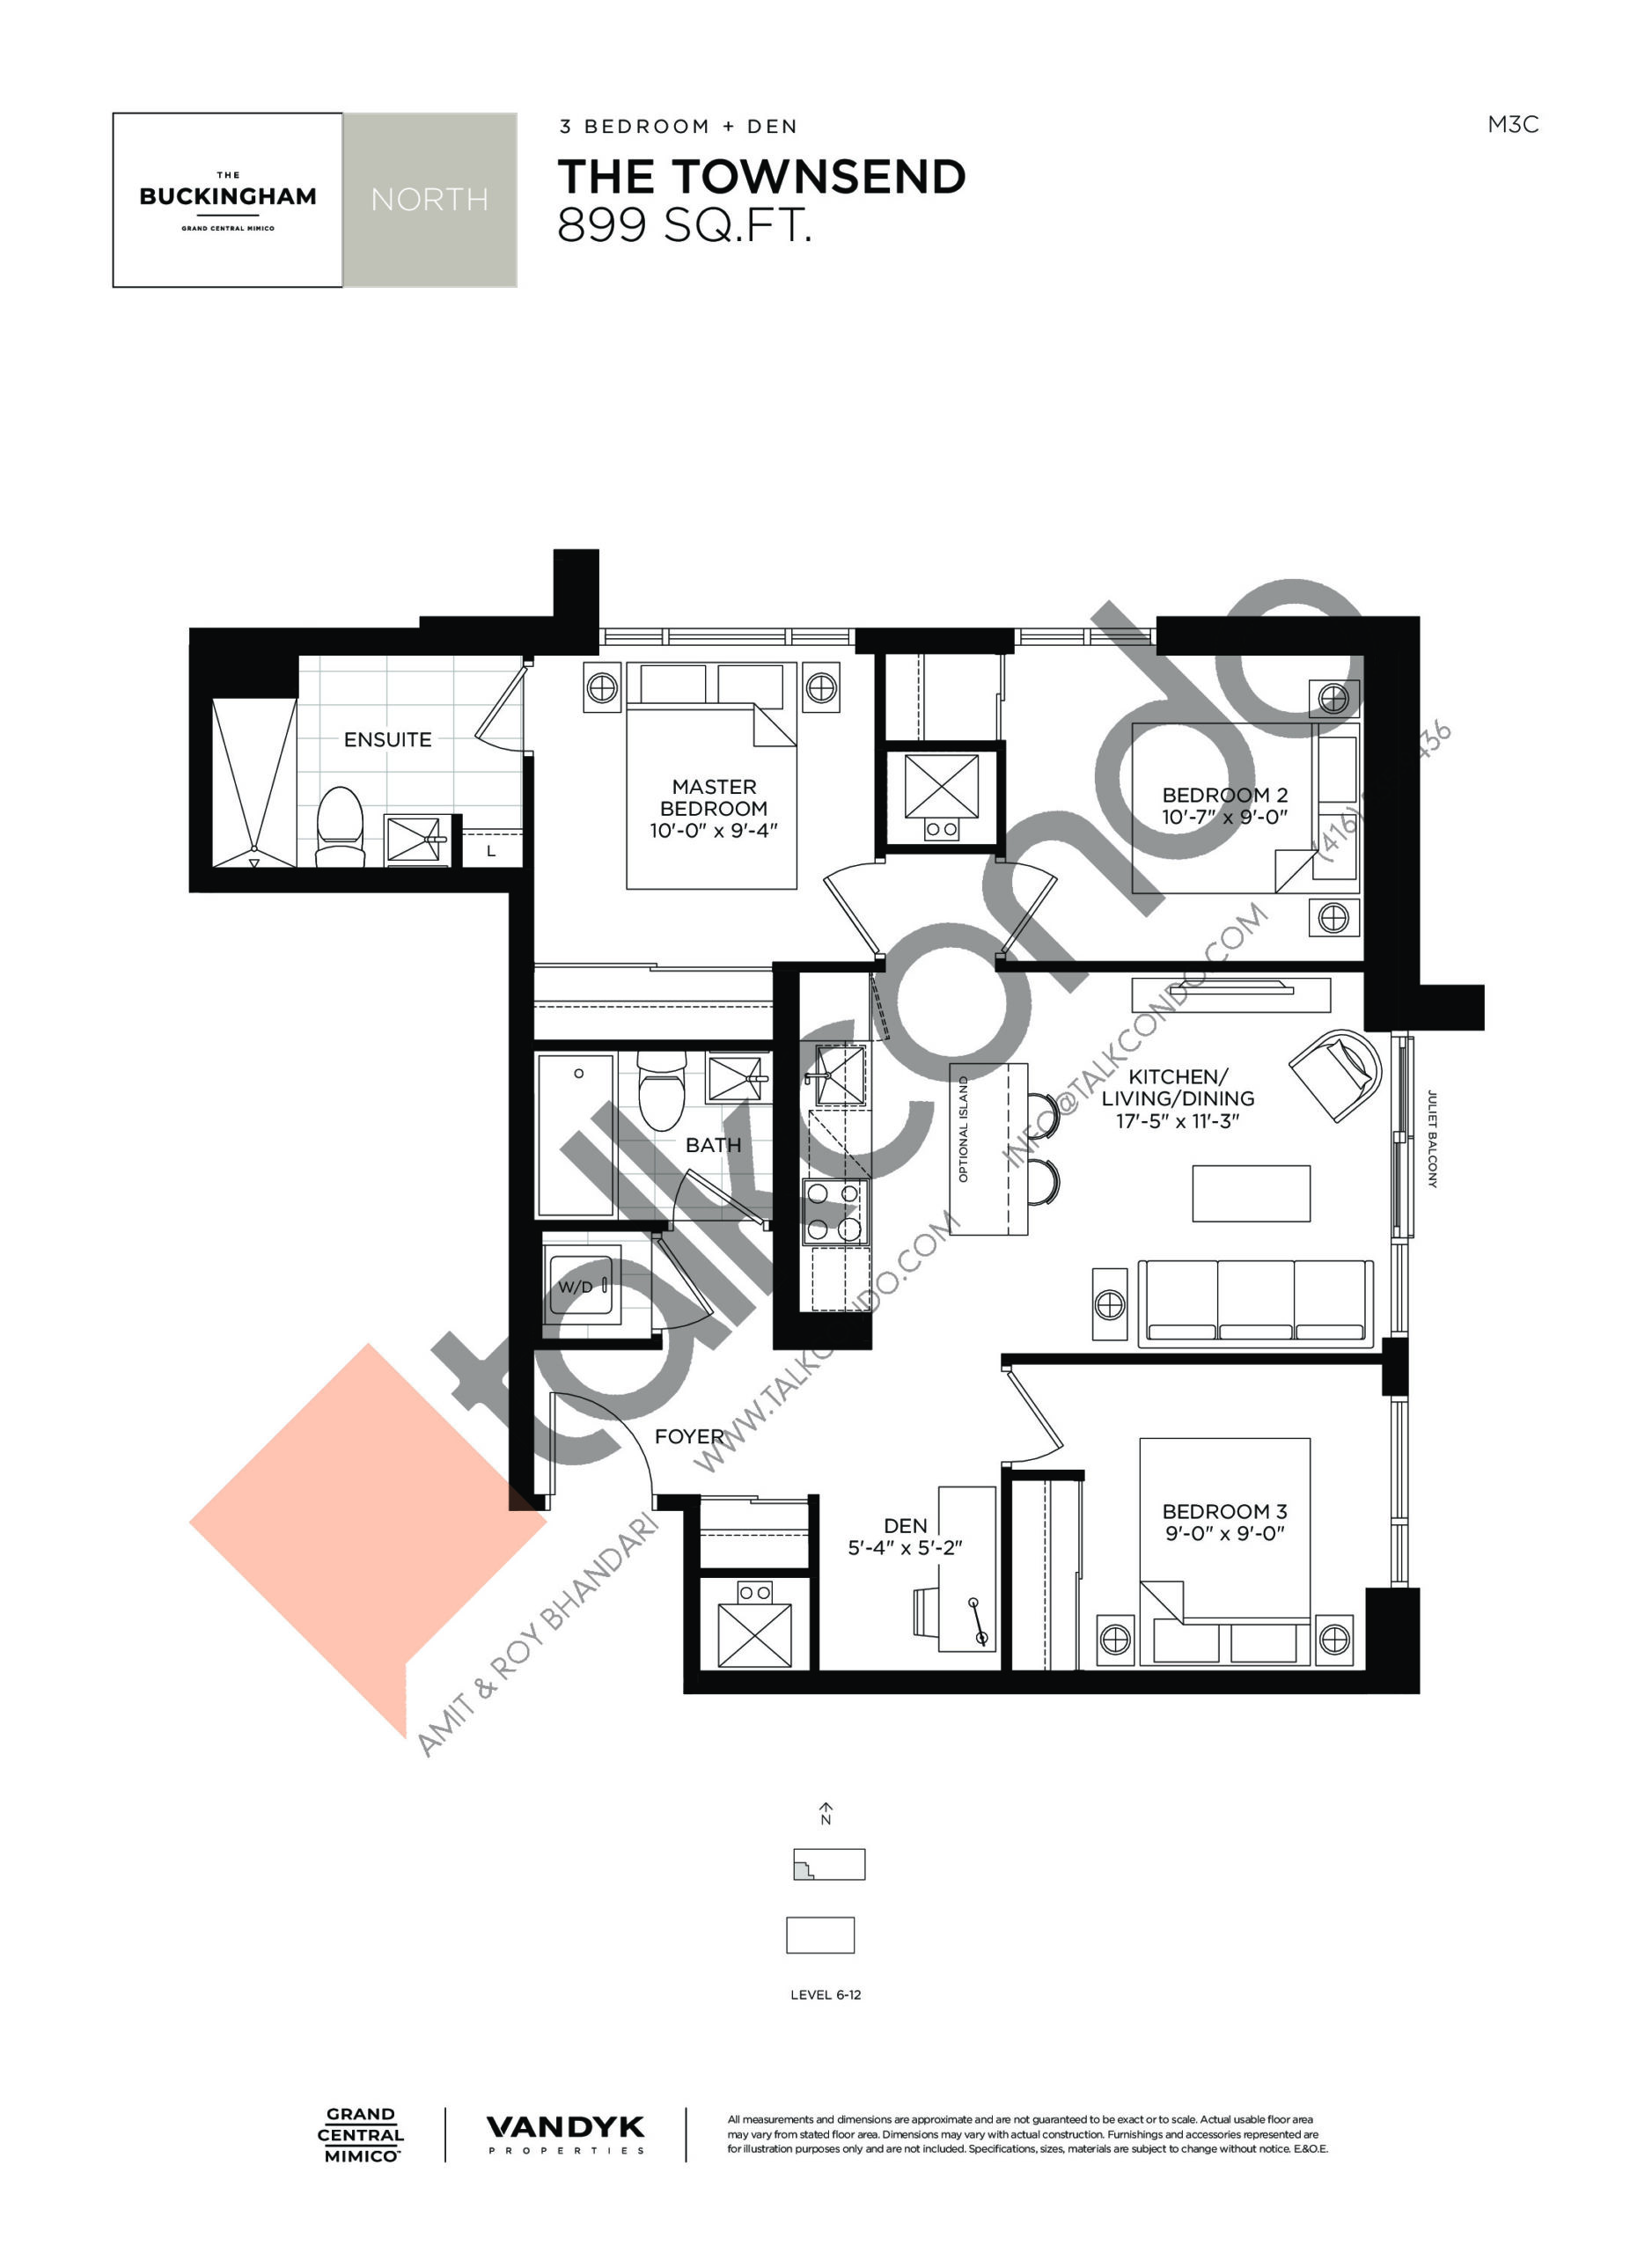 The Townsend Floor Plan at Grand Central Mimico Condos - 899 sq.ft